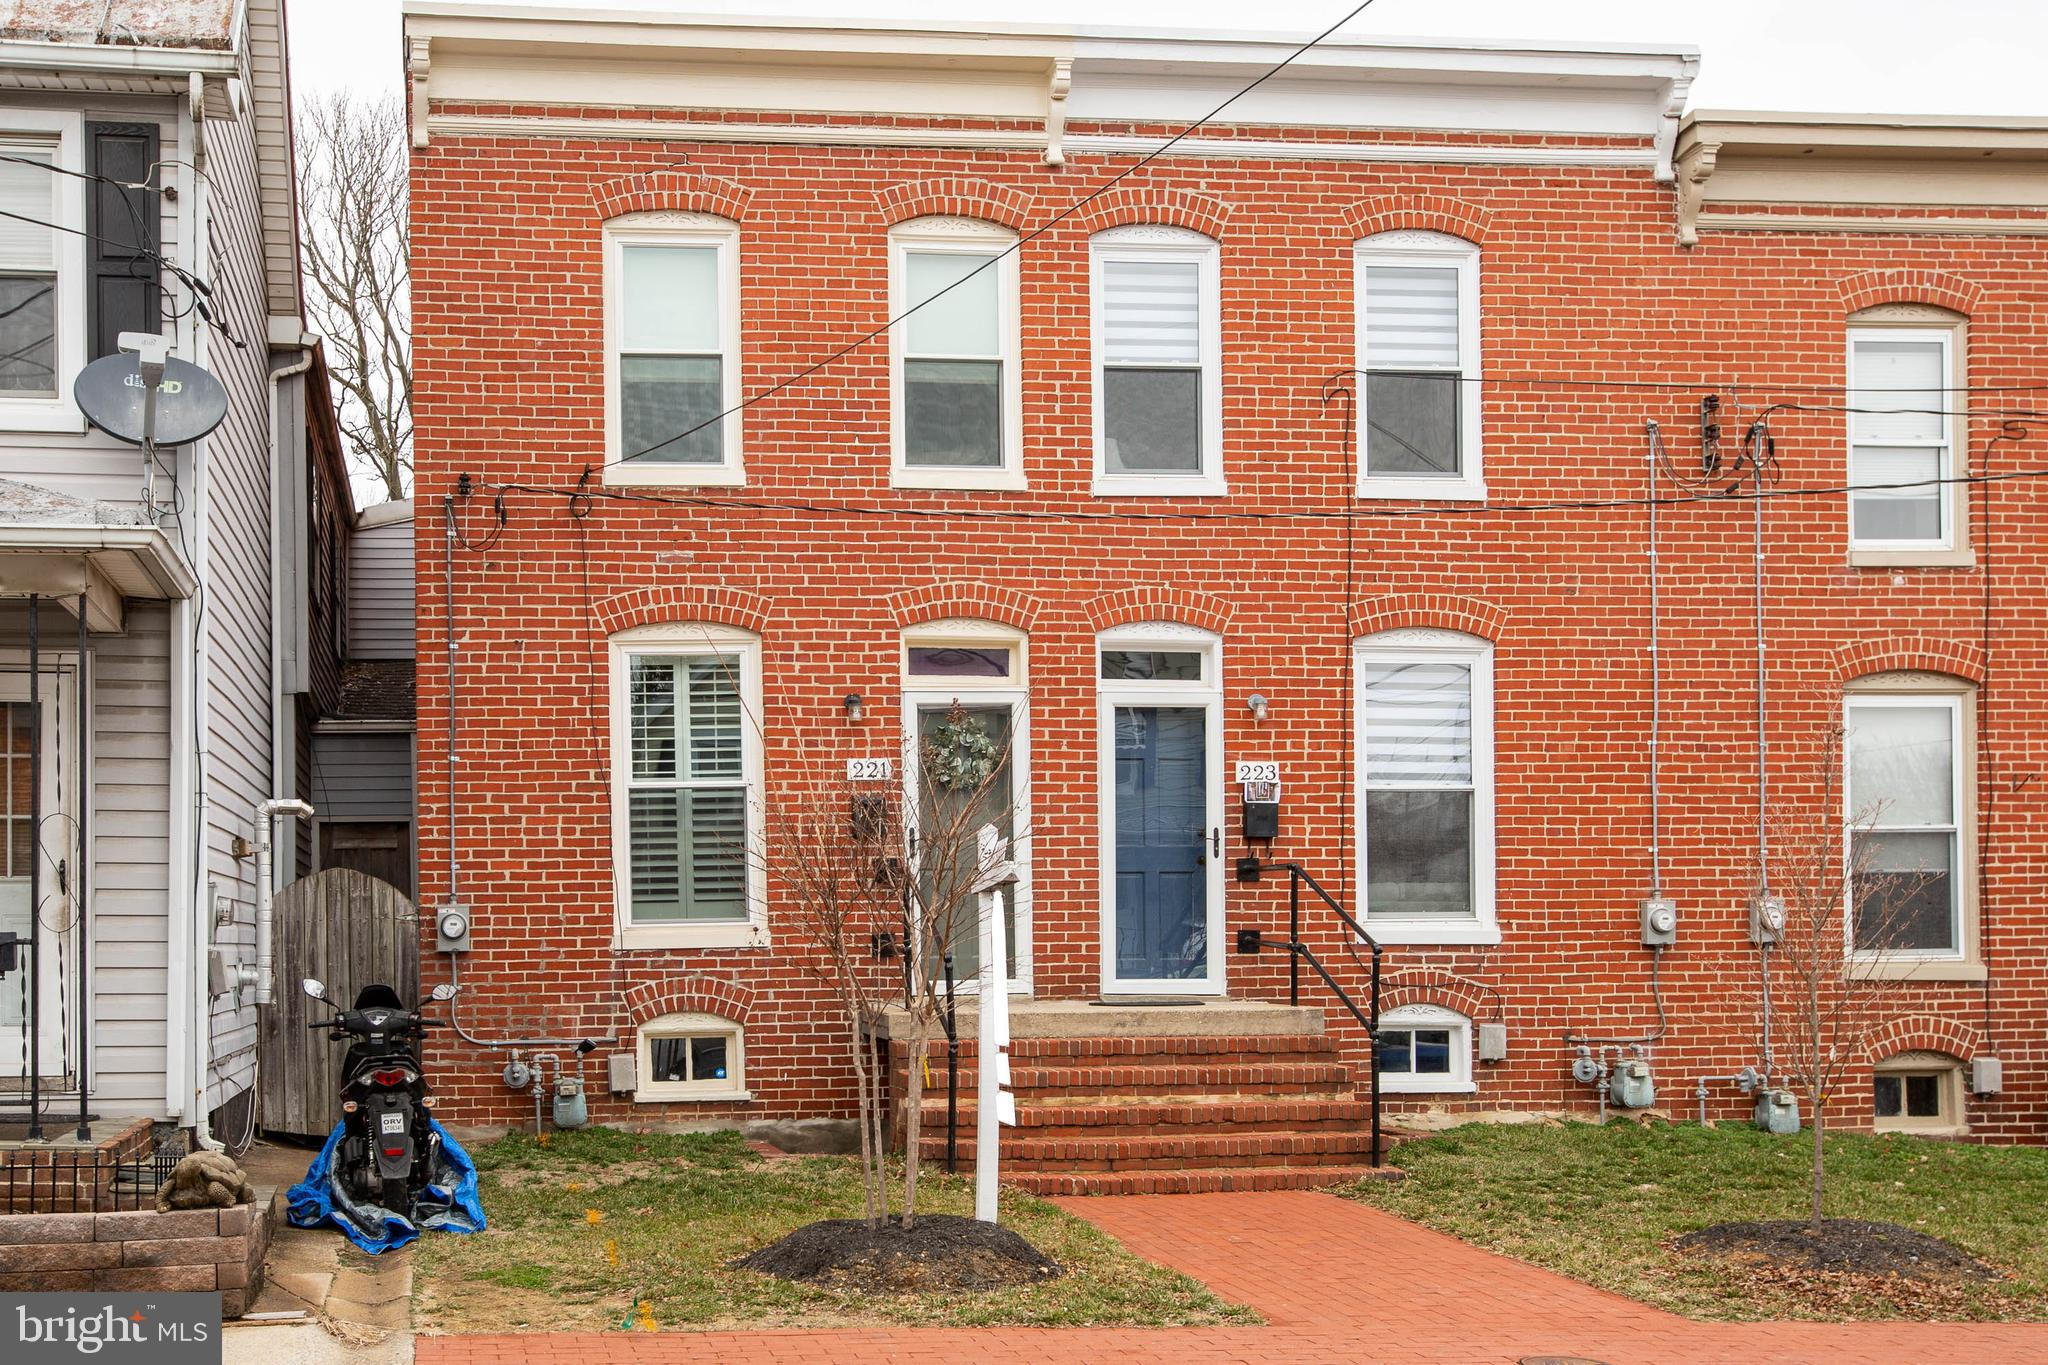 221 E 6th St, Frederick, MD, 21701